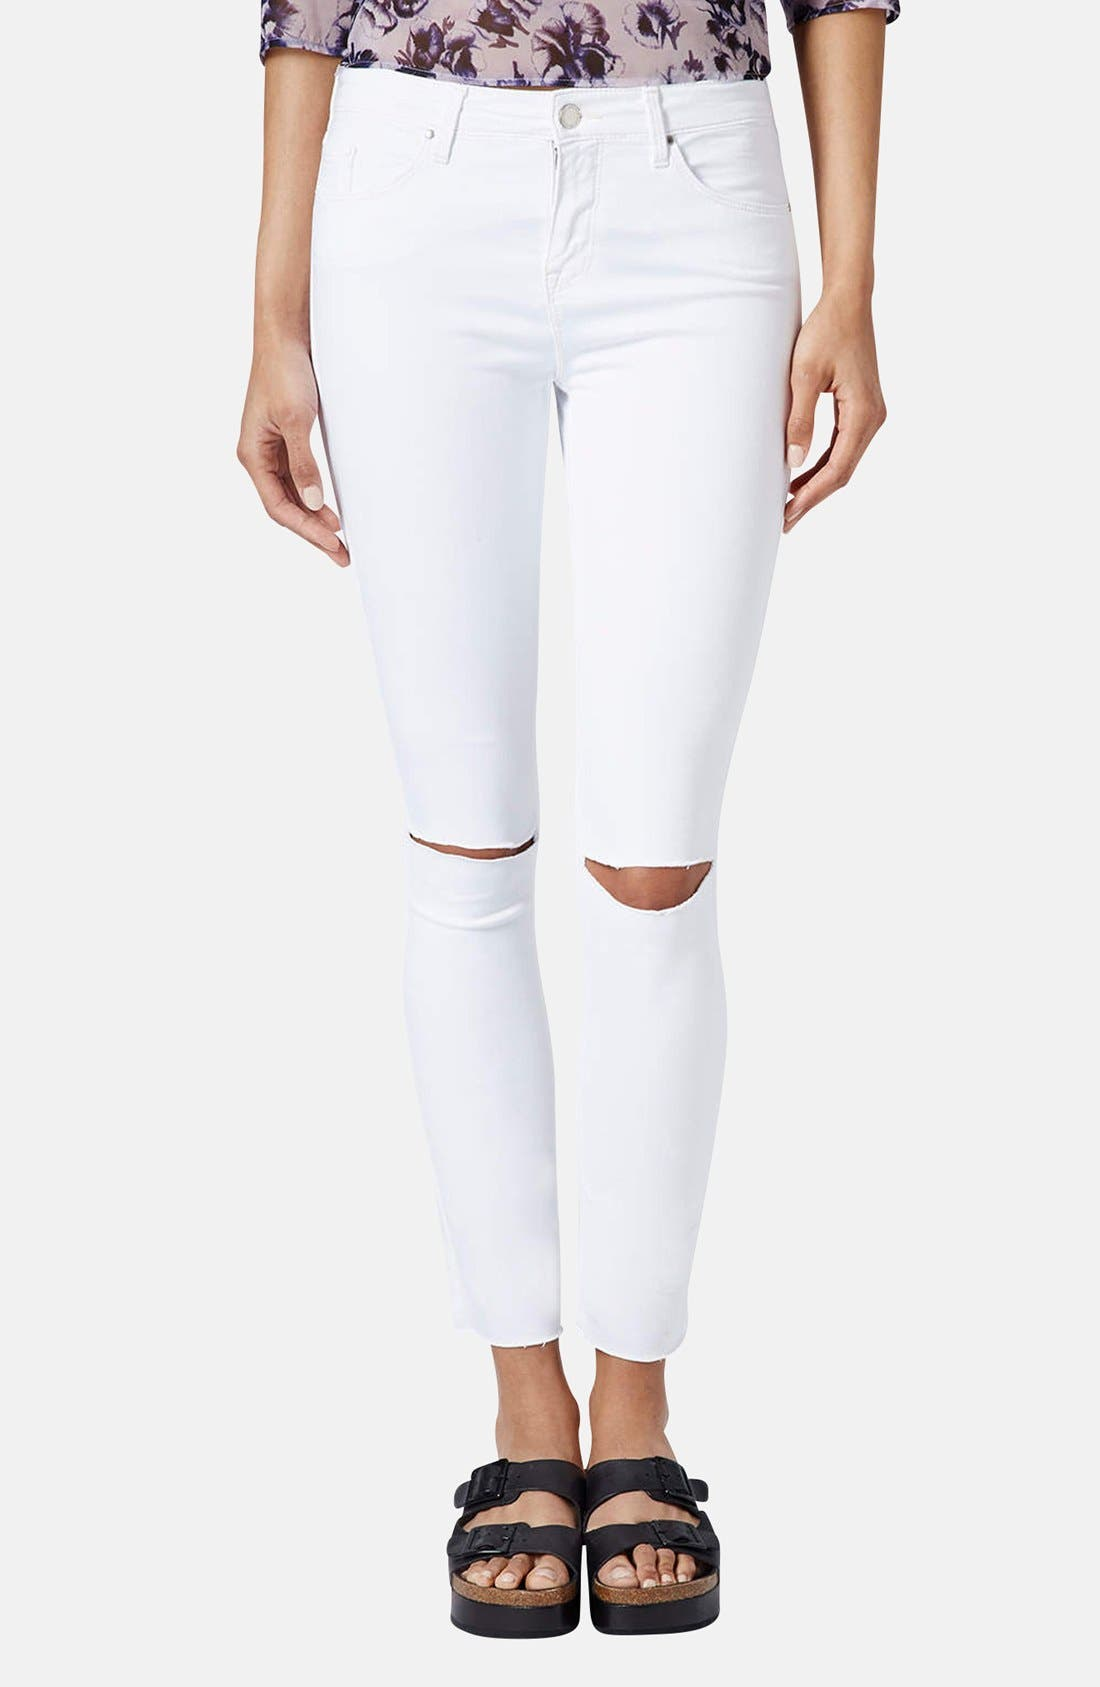 TOPSHOP, Moto 'Leigh' Distressed Skinny Jeans, Main thumbnail 1, color, 100